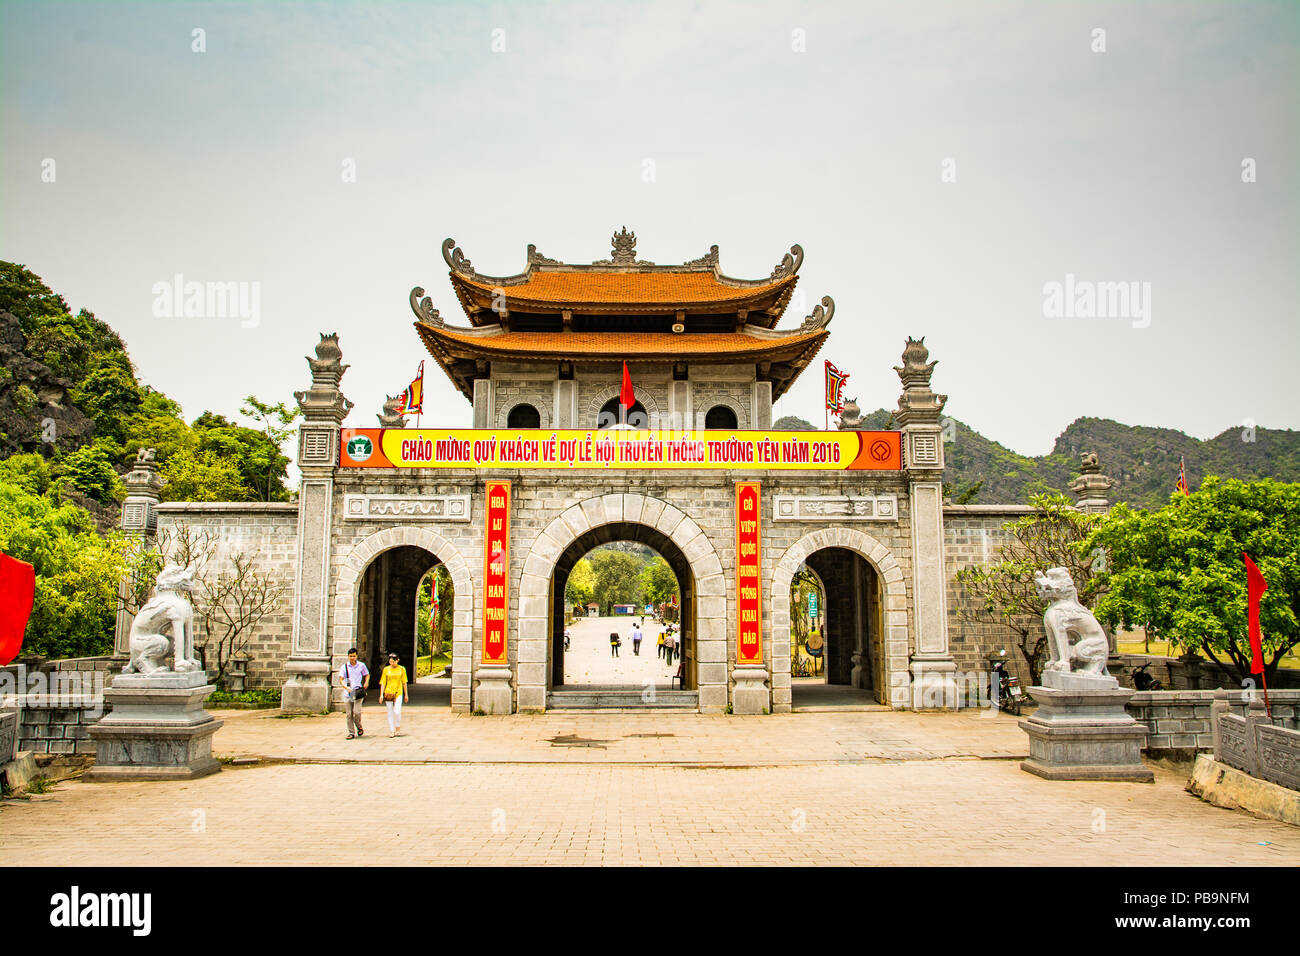 An exploration of Vietnamese culture and tourism - Stock Image